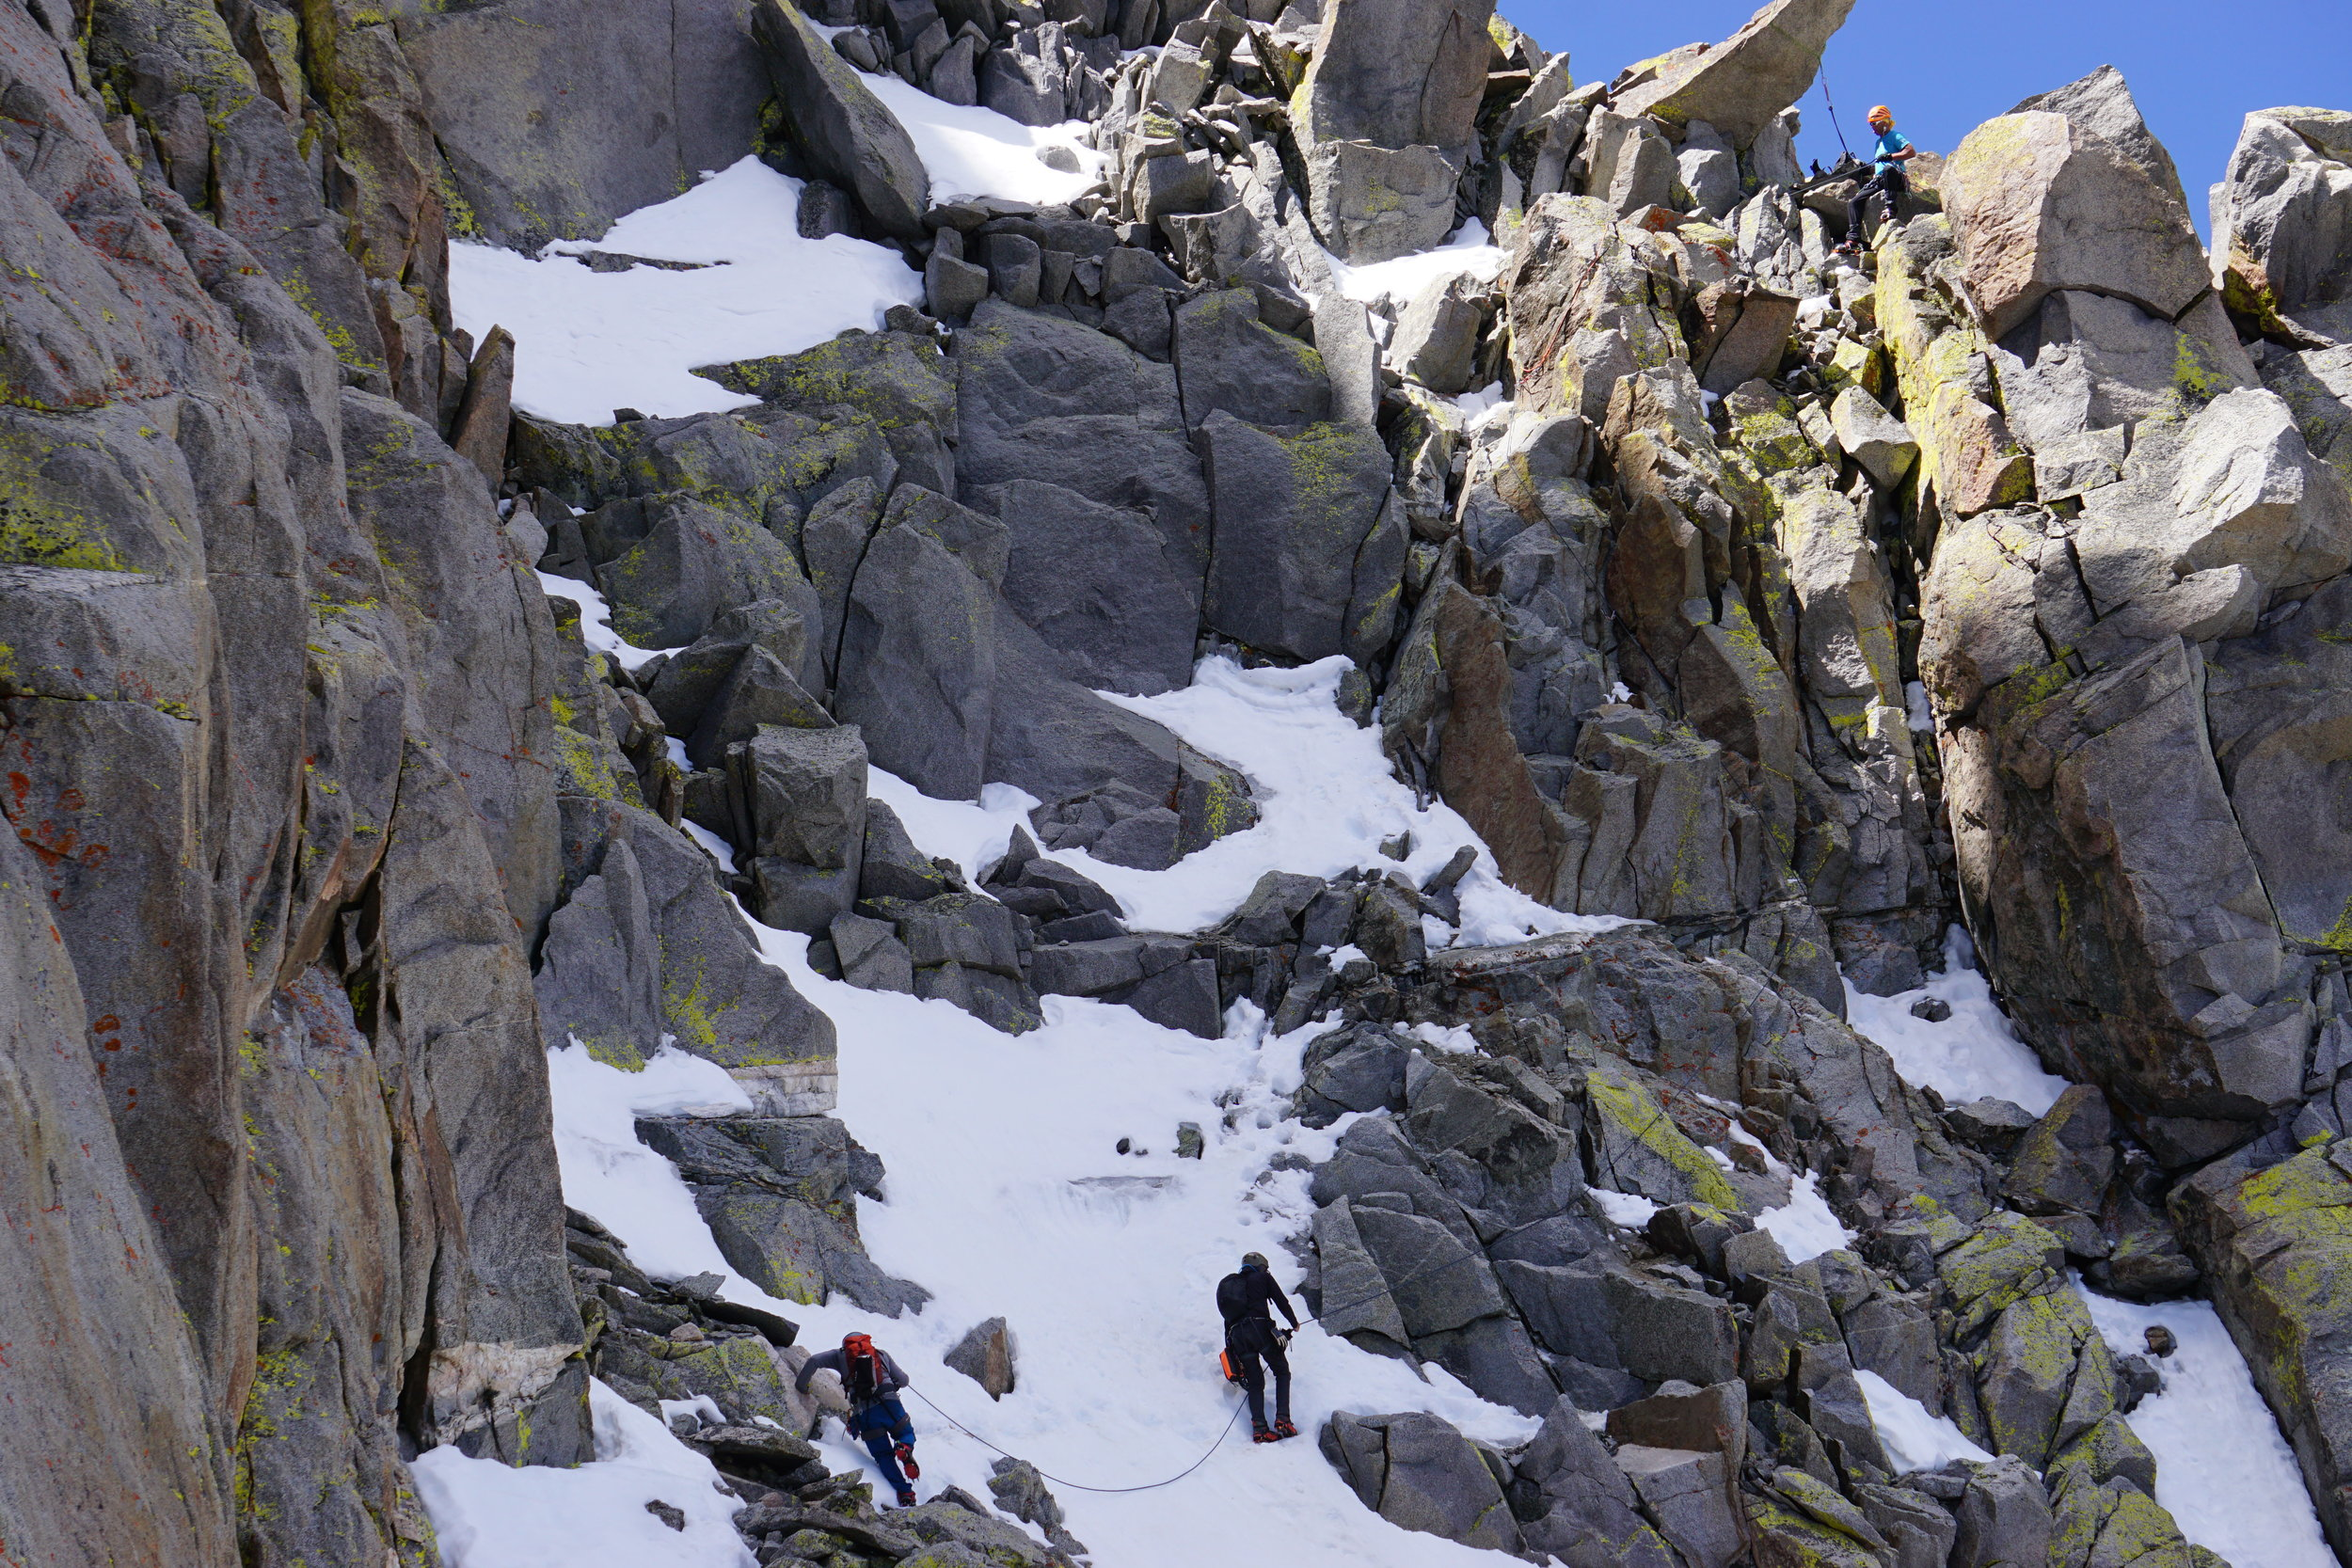 Mount Sill Mountaineering High Sierra Nevada